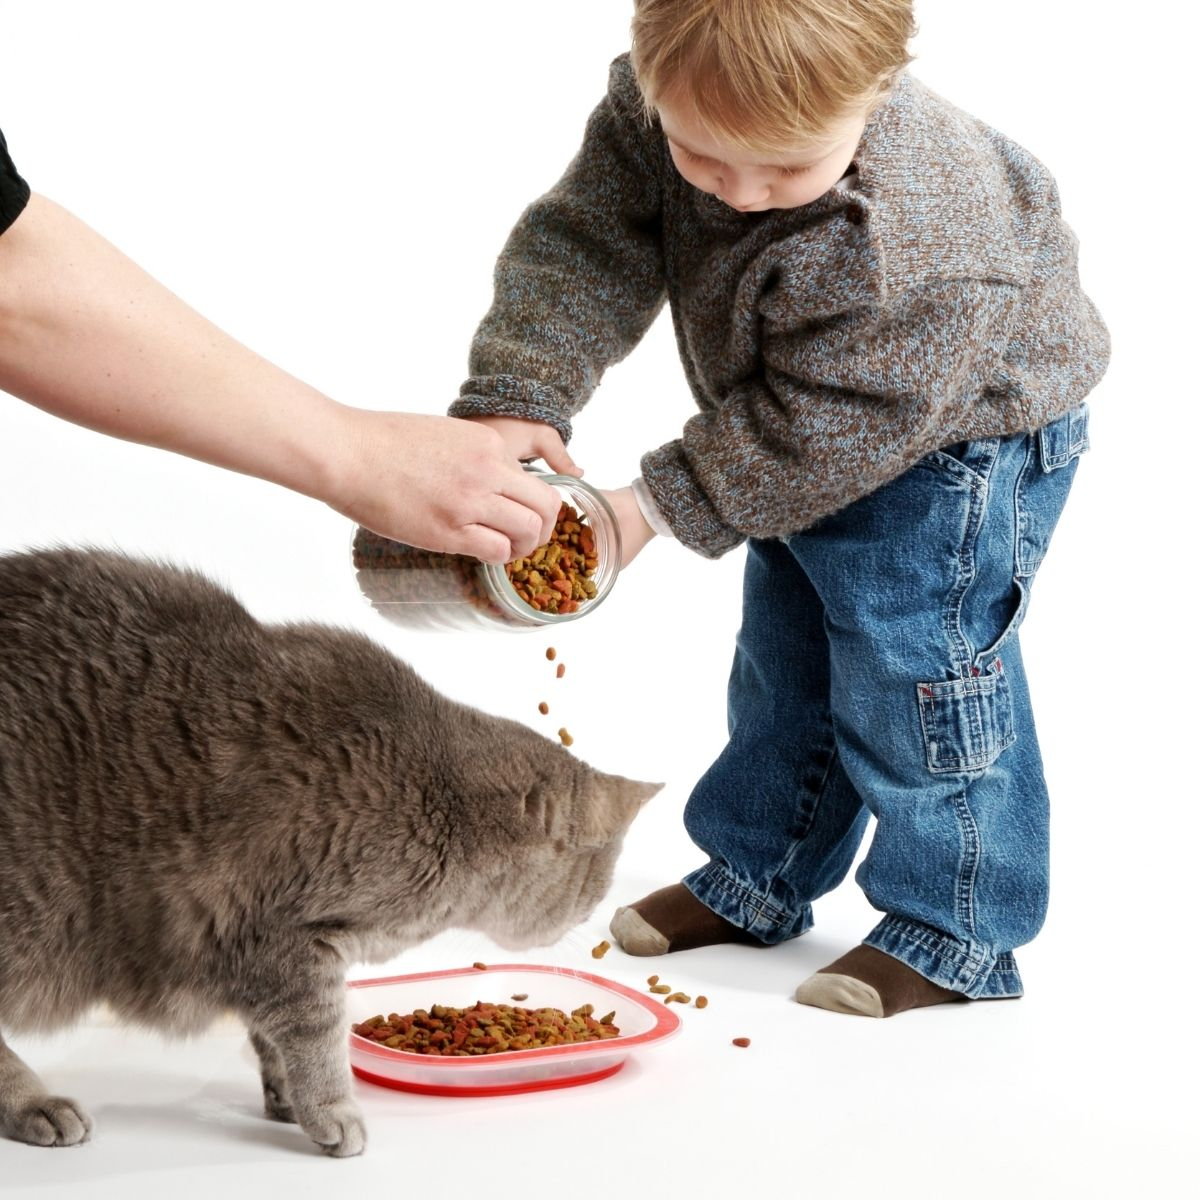 toddler helping feed cat